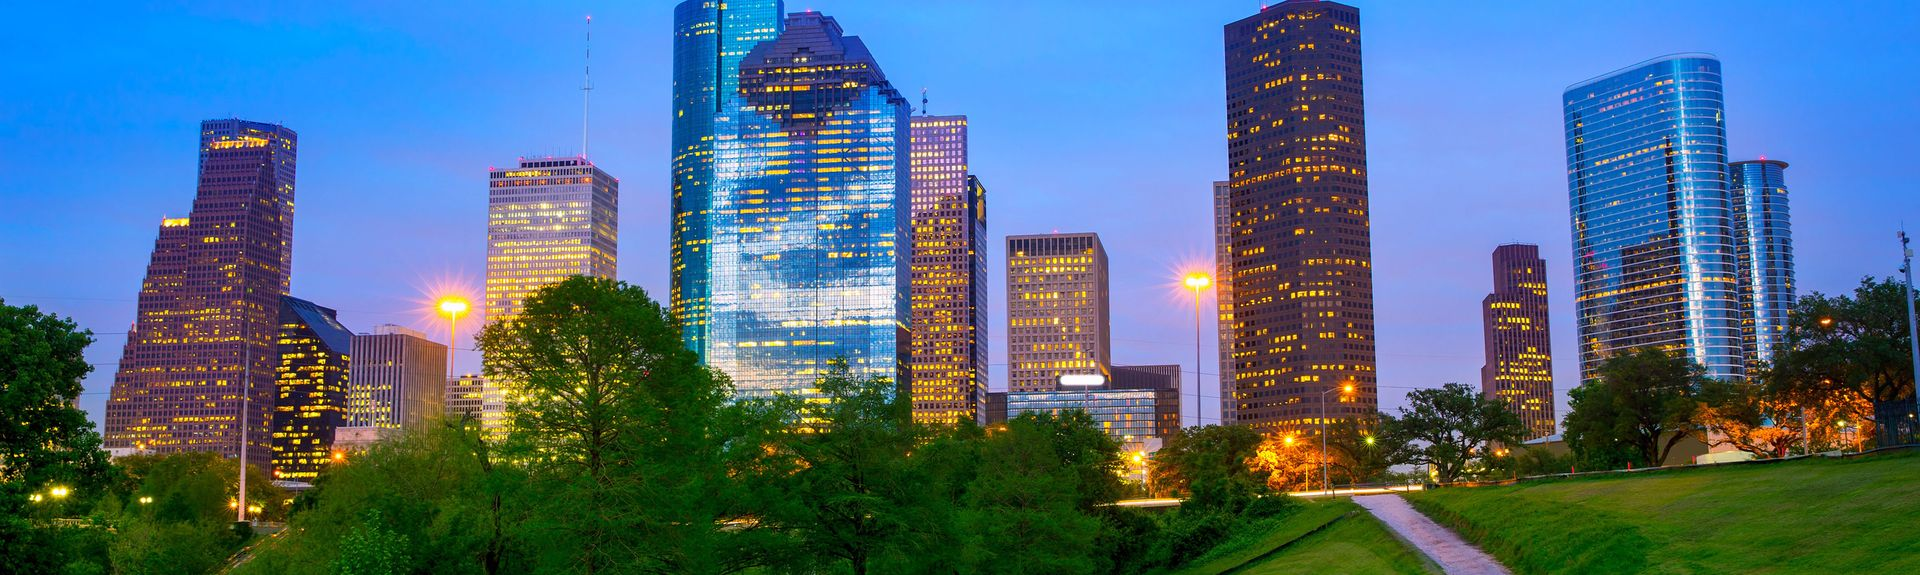 Downtown Houston, Houston, Texas, United States of America